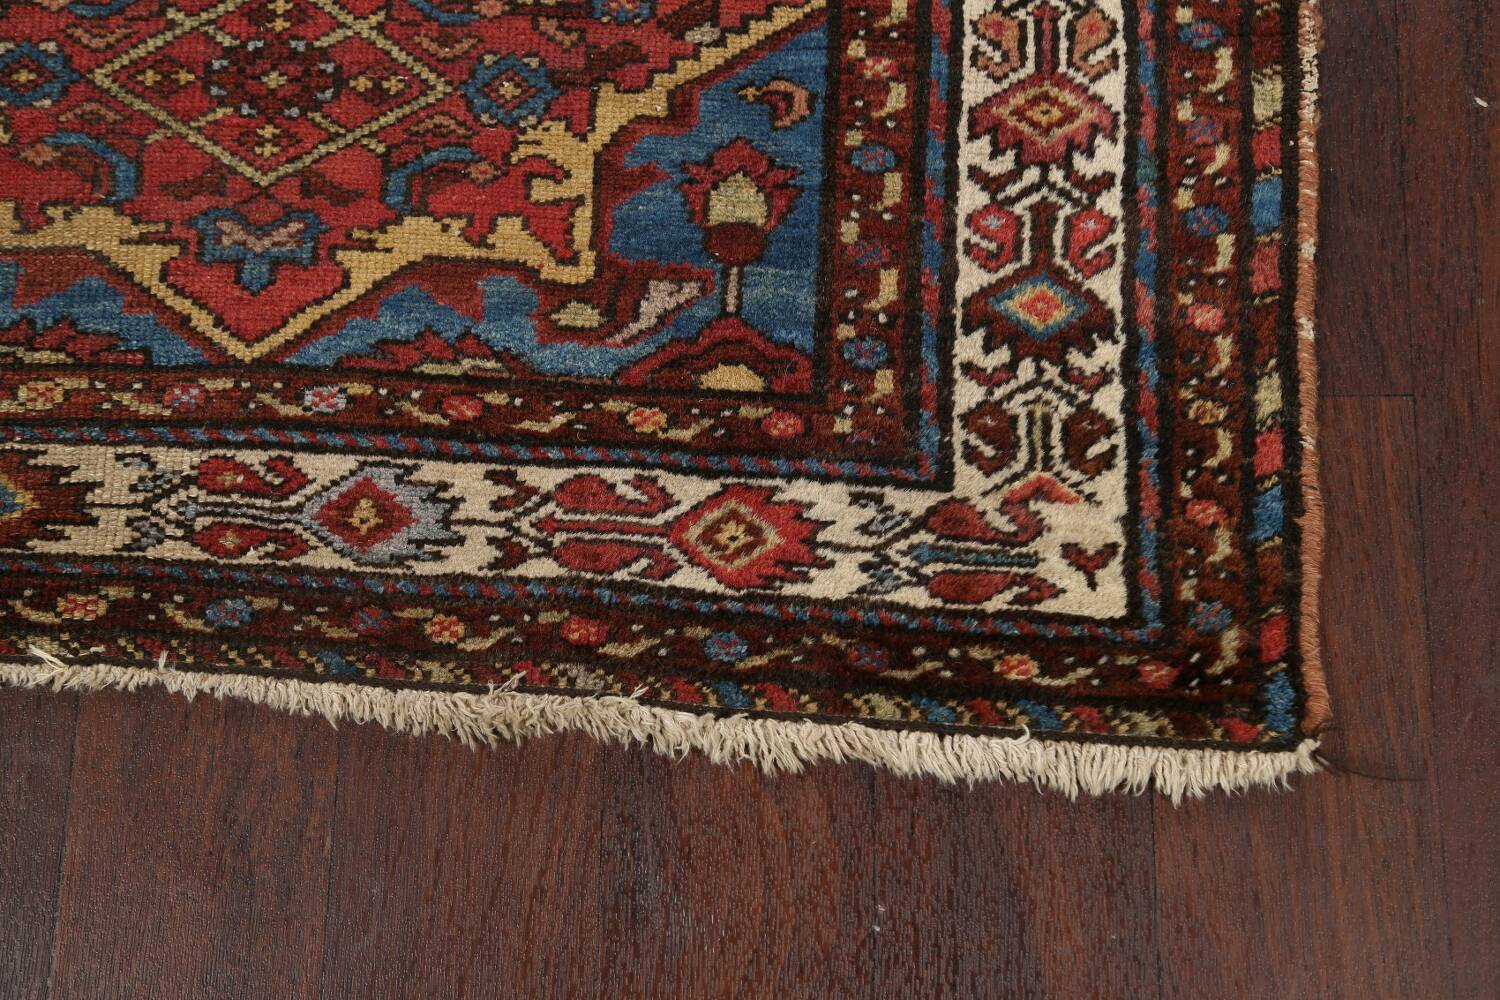 Pre-1900 Antique Vegetable Dye Malayer Persian Area Rug 4x7 image 5